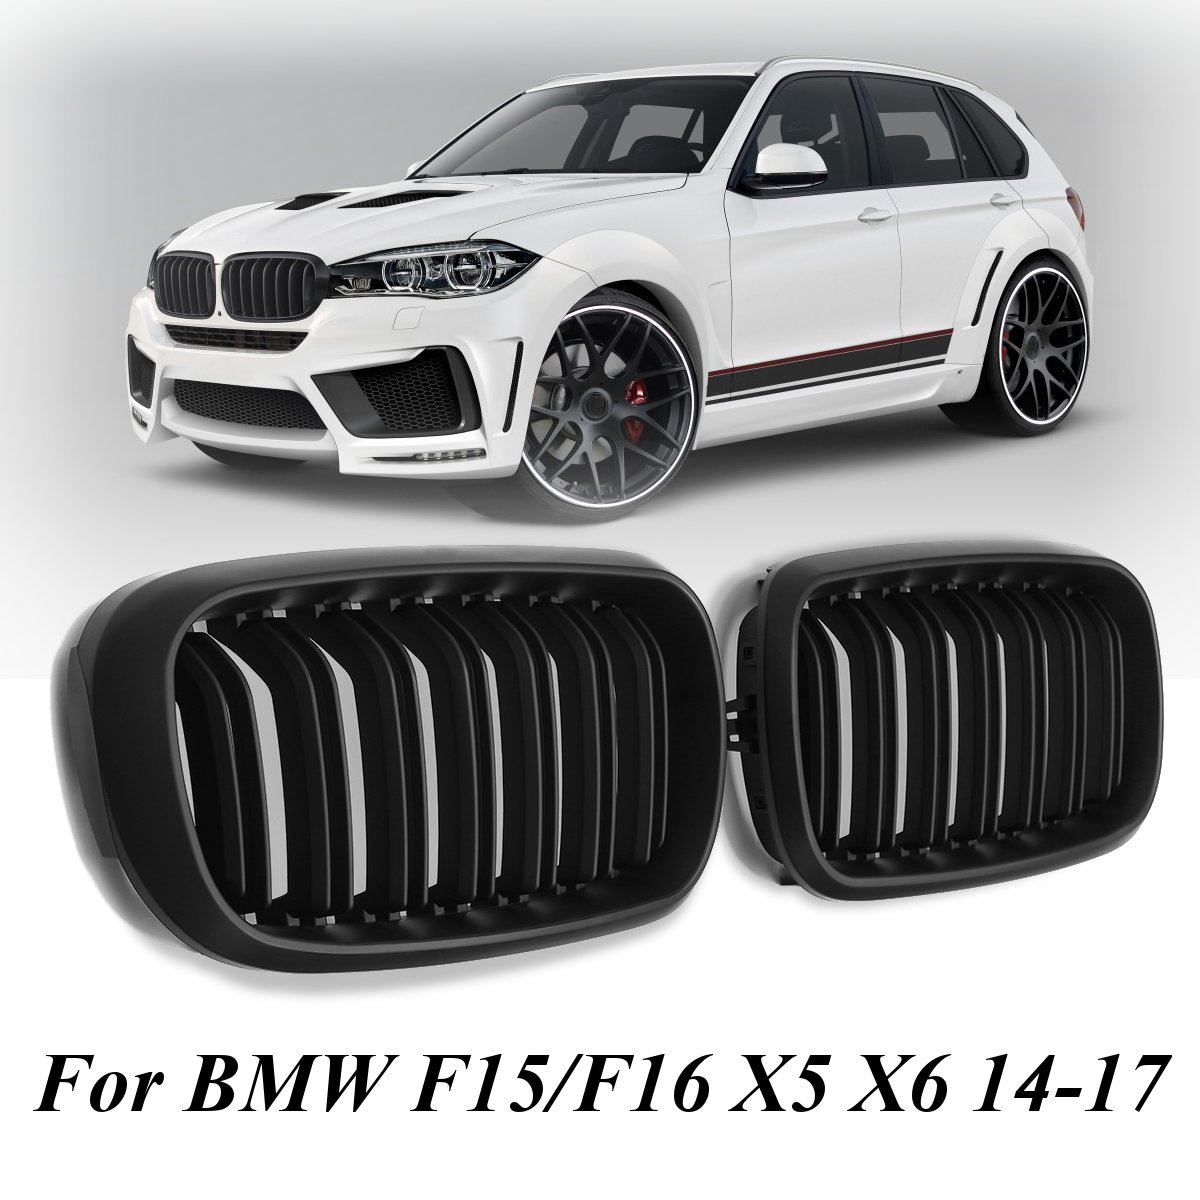 Pair New Matte Black Double Slat Front Grill Grille For BMW F15/F16 X5 X6 2014-2017 f15 f16 kidney gloss black abs plastic original style front racing grill grille for 2014 2015 2016 bmw f16 x6 bmw f15 x5